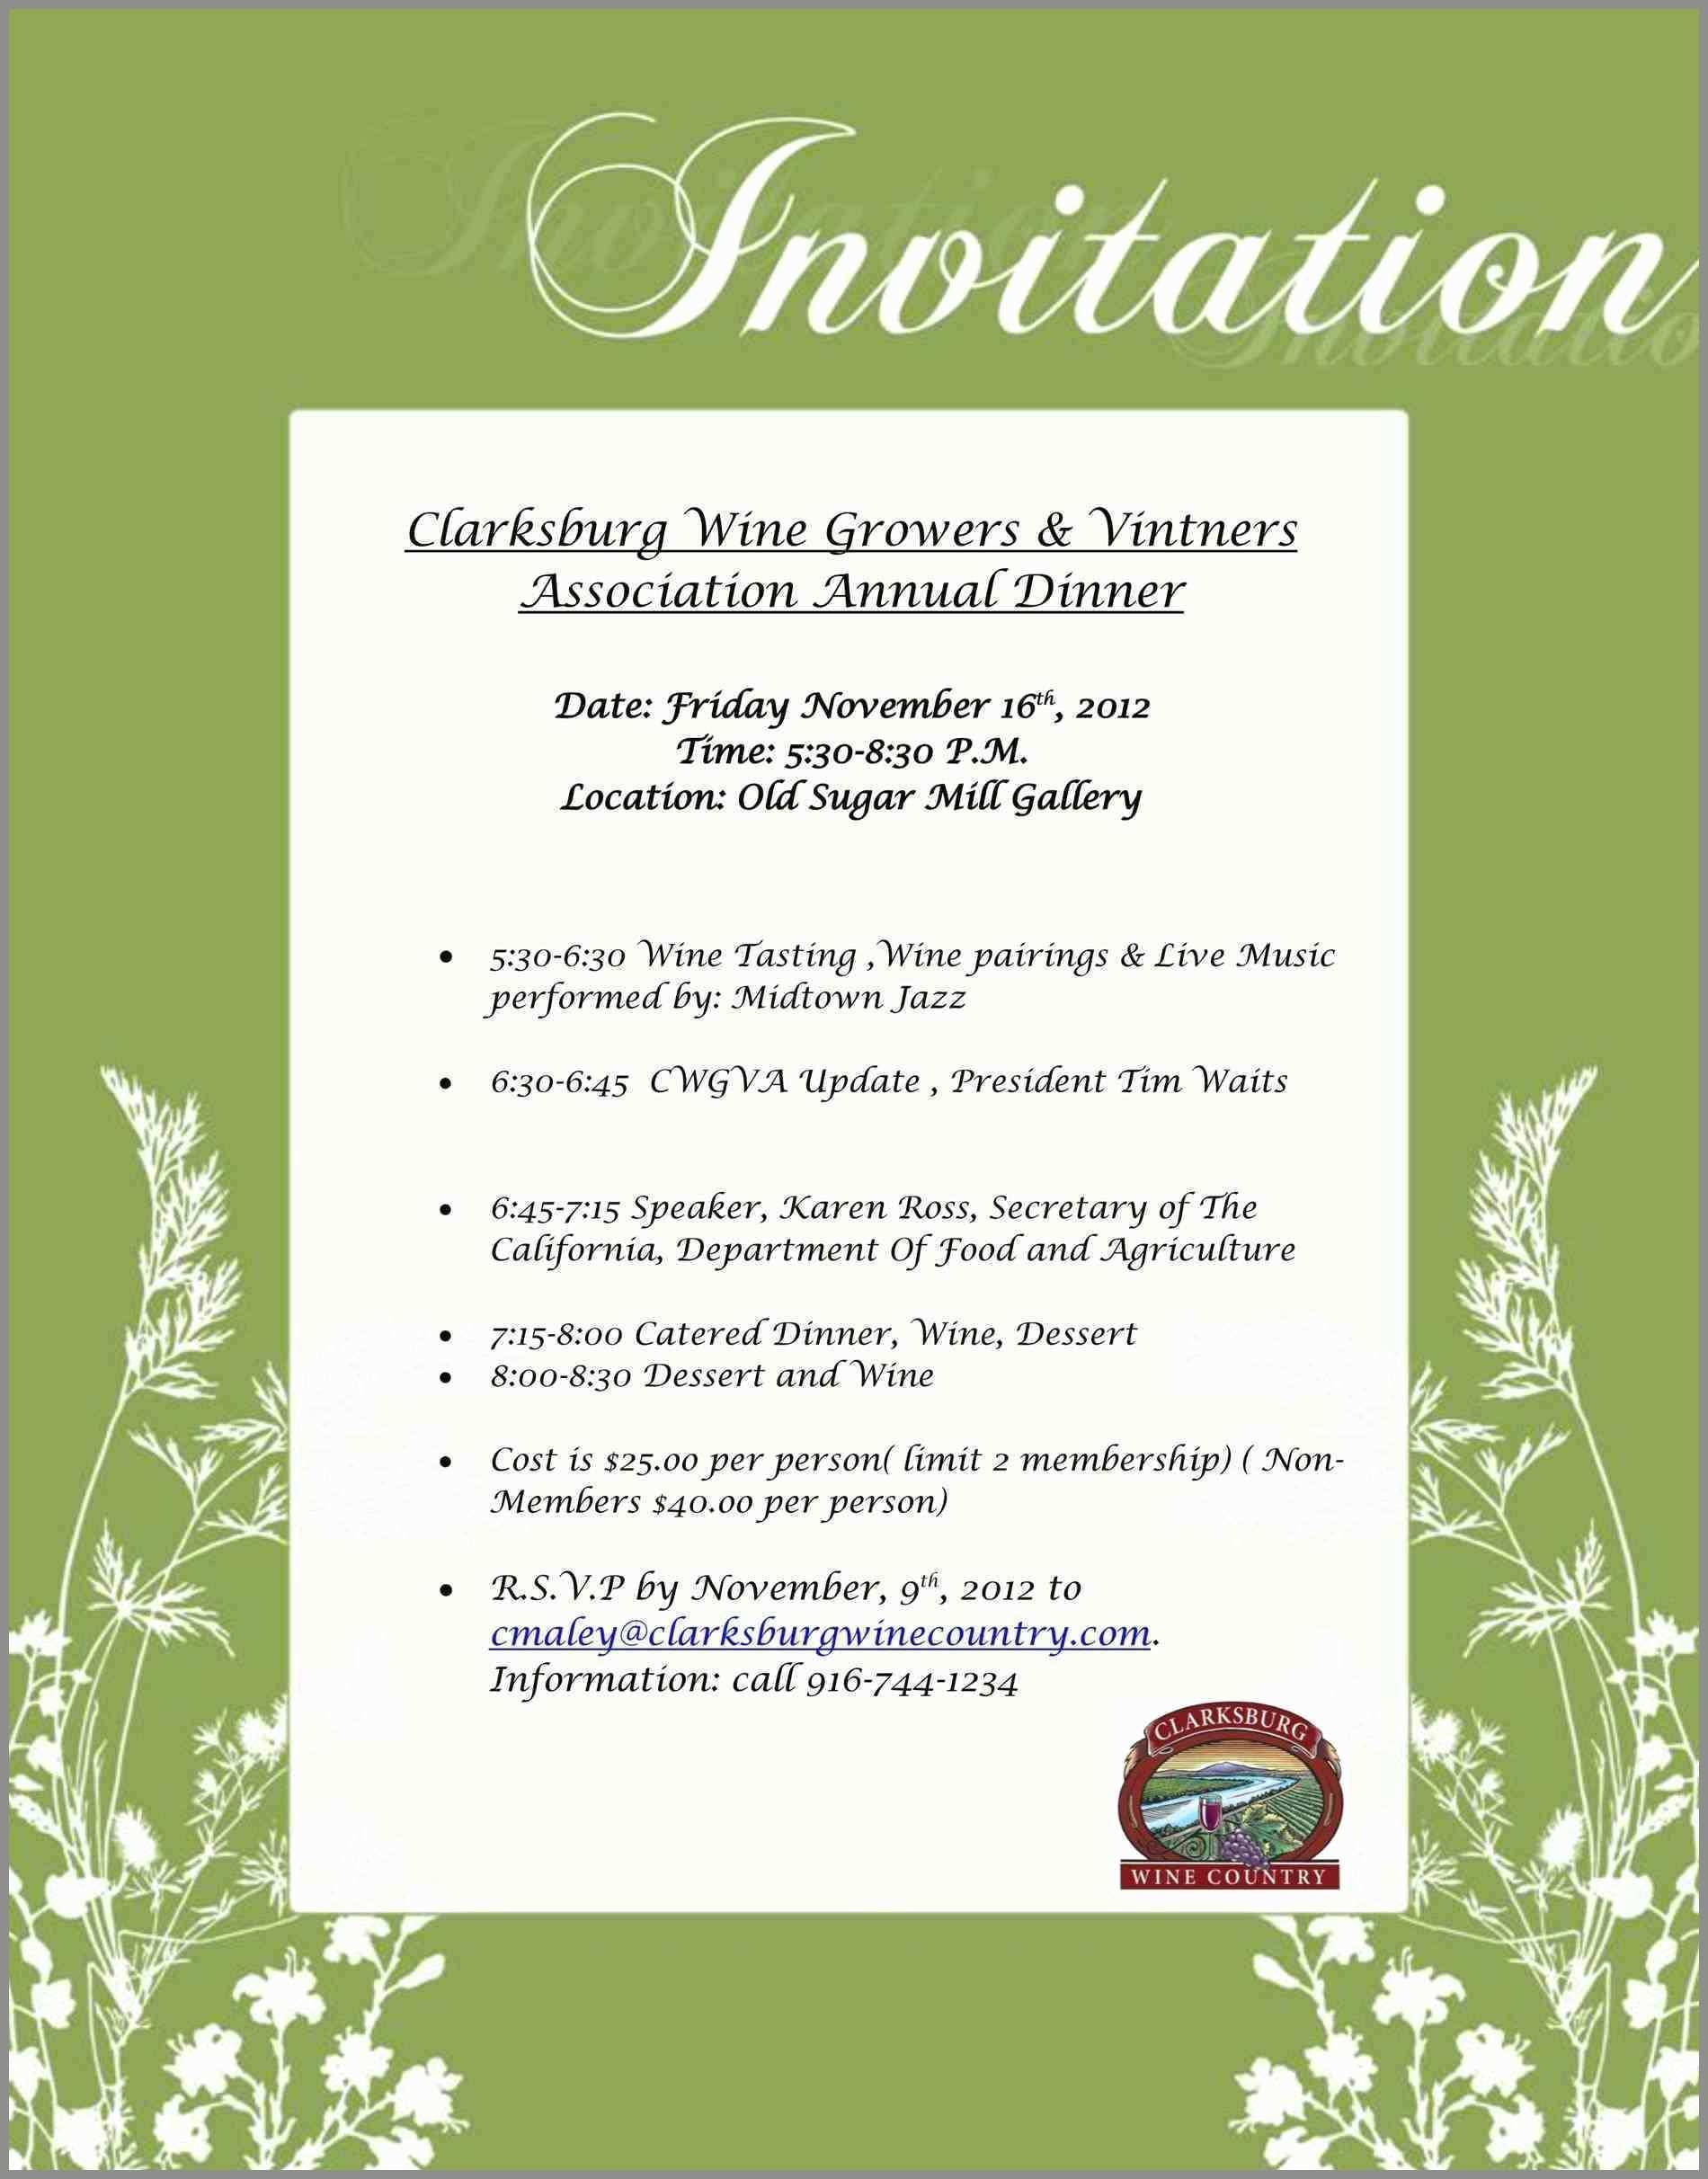 Official Invitation To Dinner Template